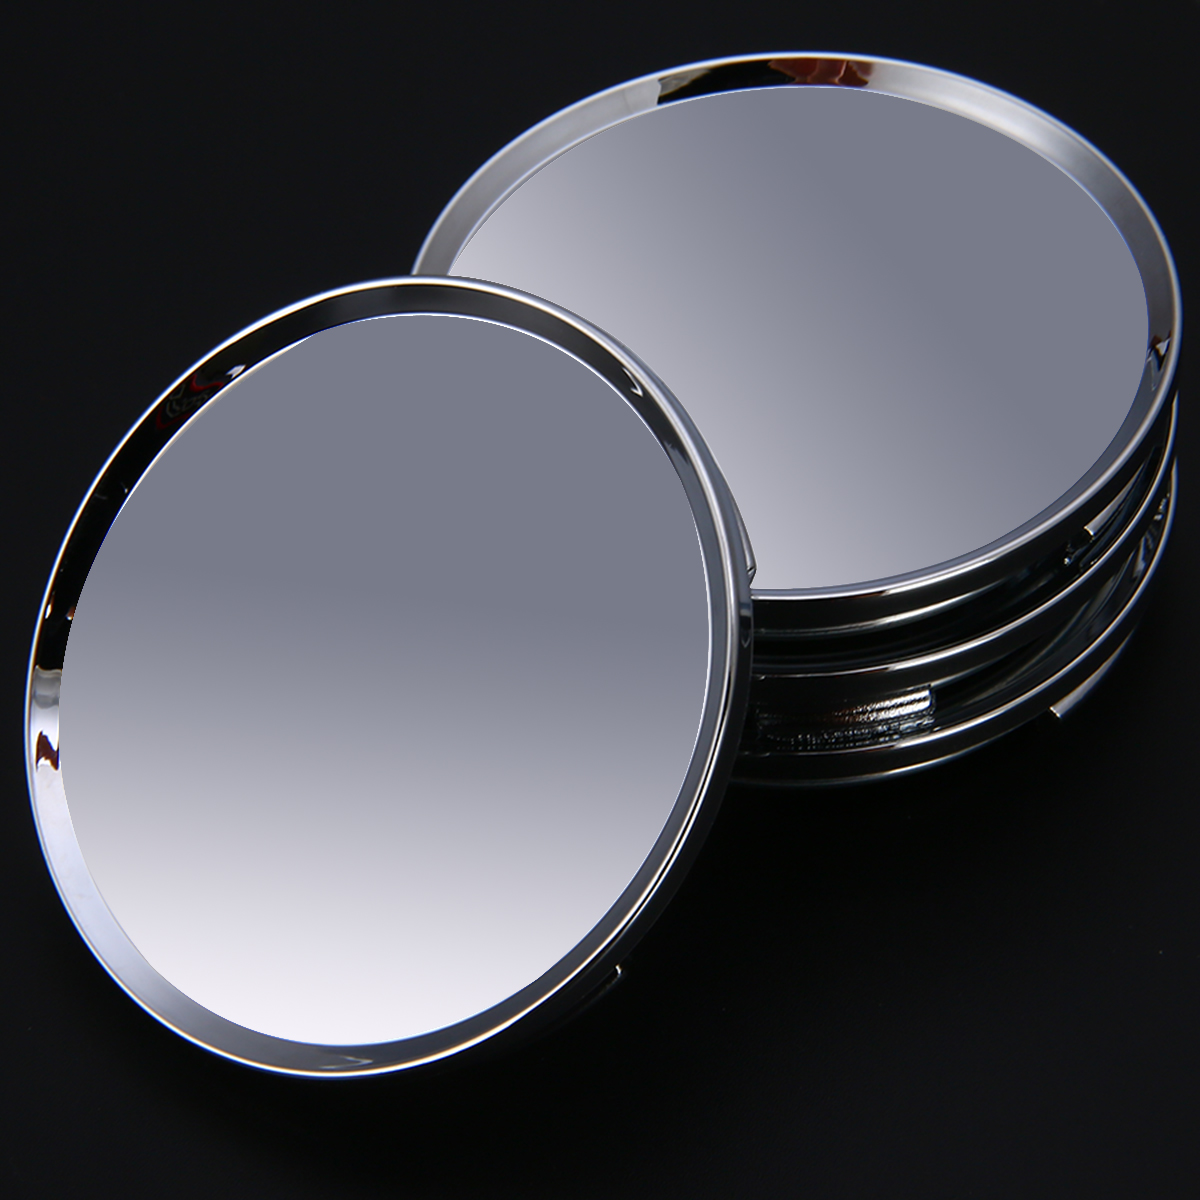 Image 3 - 4pcs/set Universal 63mm Car Vehicle Wheel Center Hub Cap Cover Silver For Most Car Trucks Vehicles-in Wheel Center Caps from Automobiles & Motorcycles